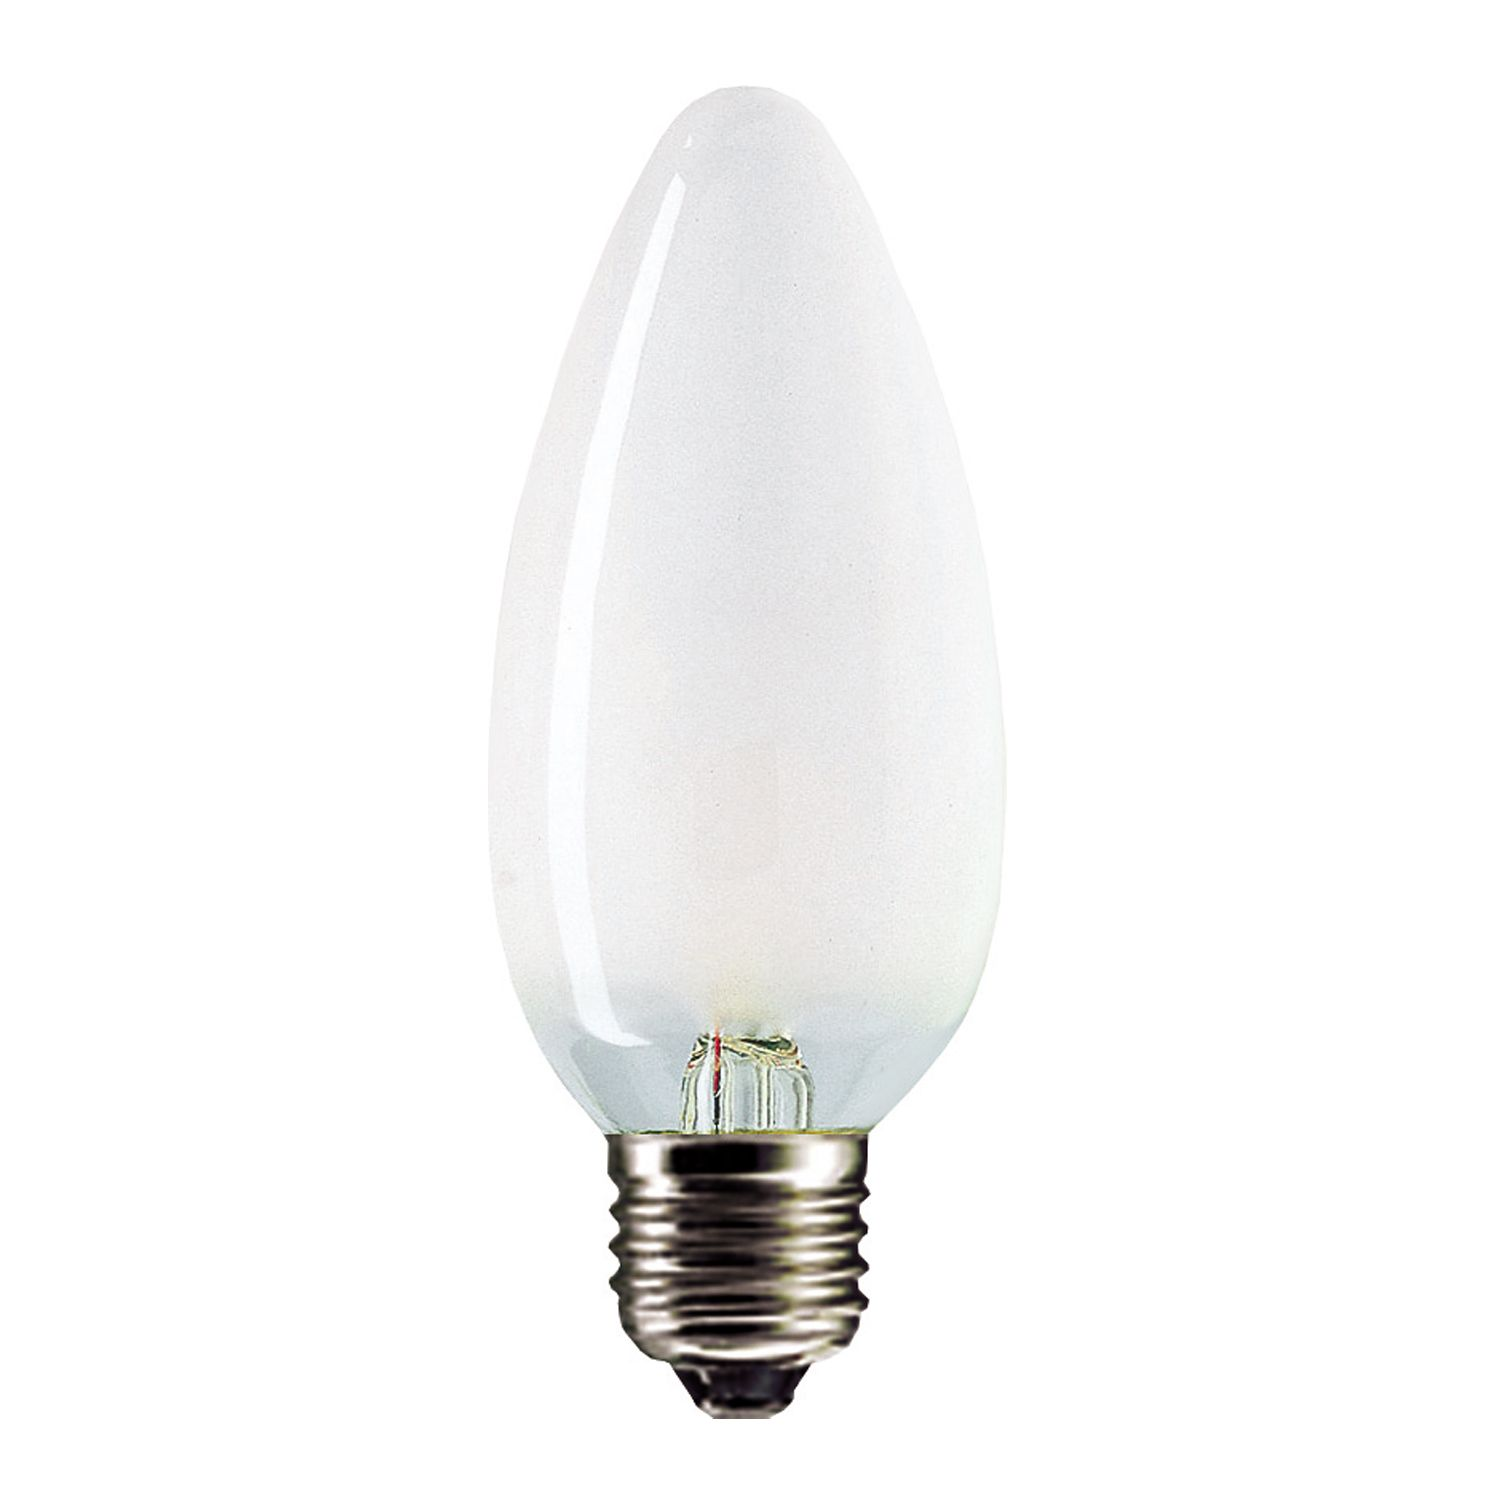 Standard Incandescent Candle Frosted B35 E27 25W 230V